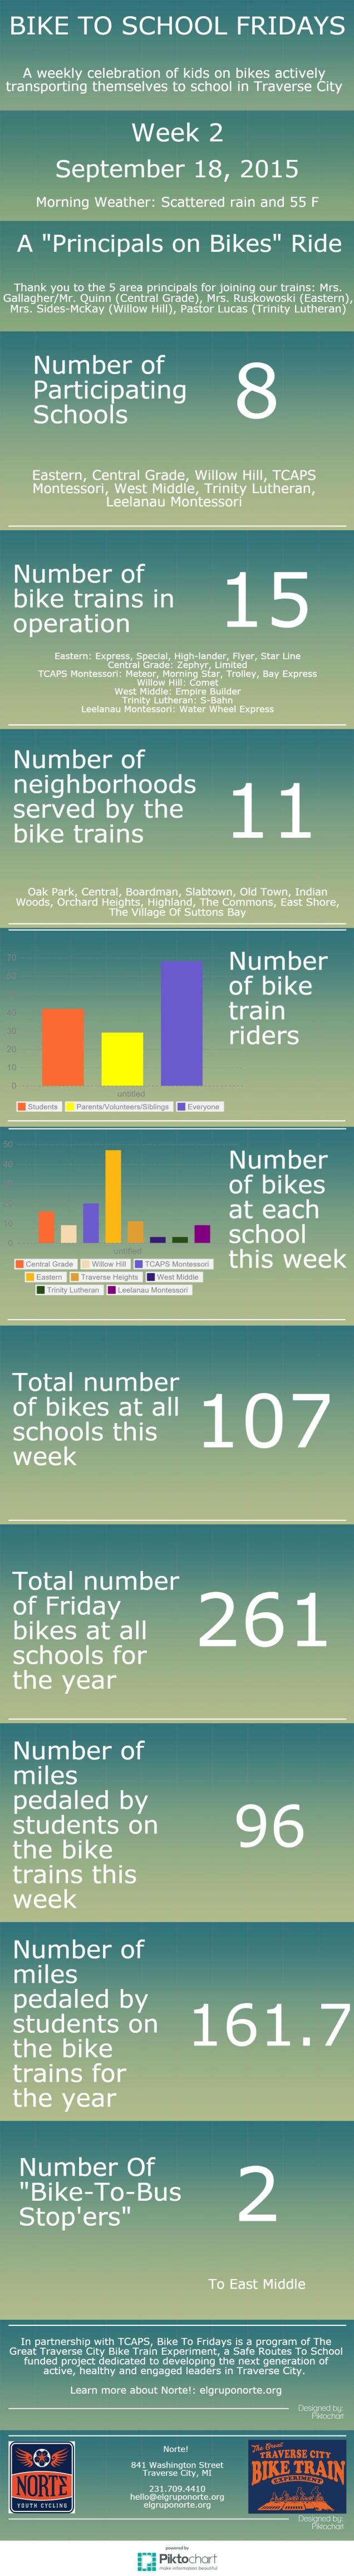 Bike To School Fridays- Week 1 (2)